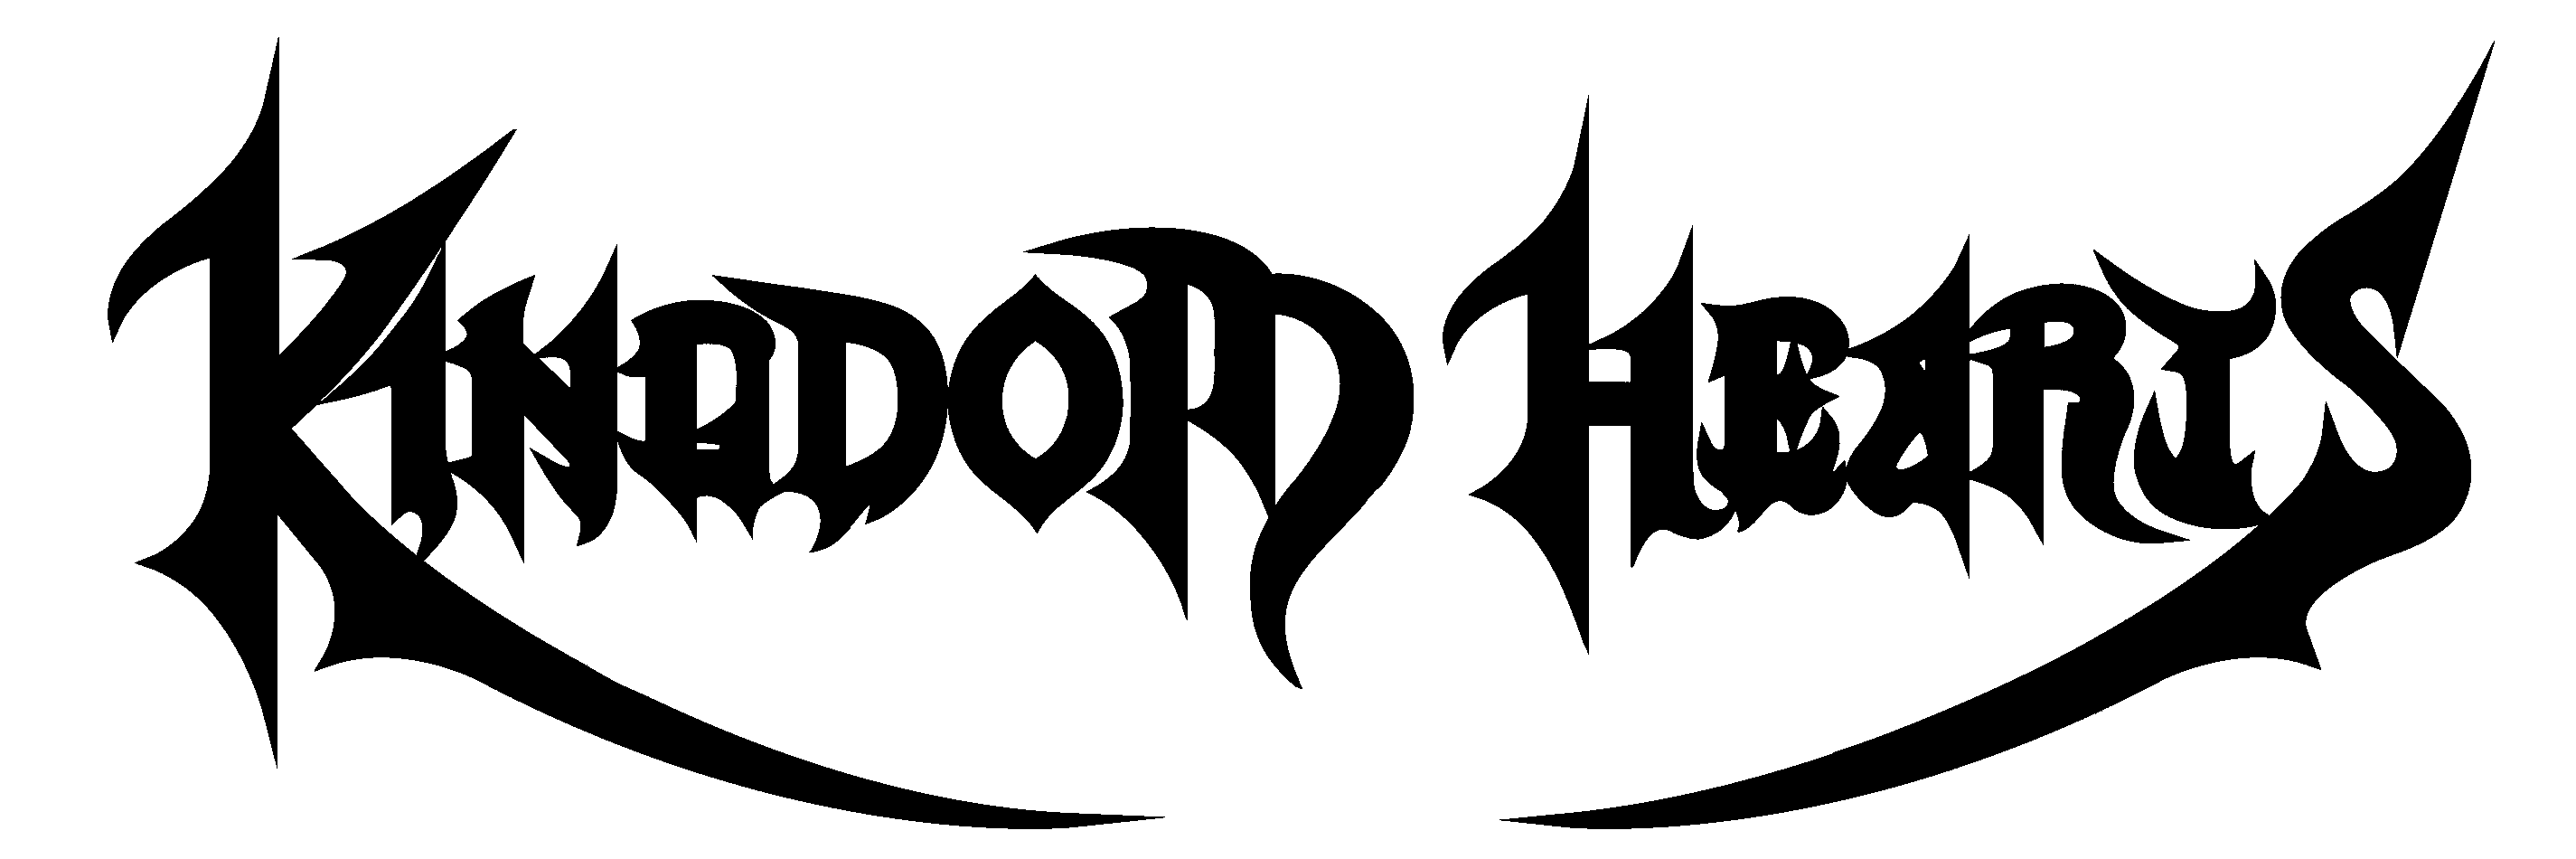 Kingdom hearts text png. File wordmark the third